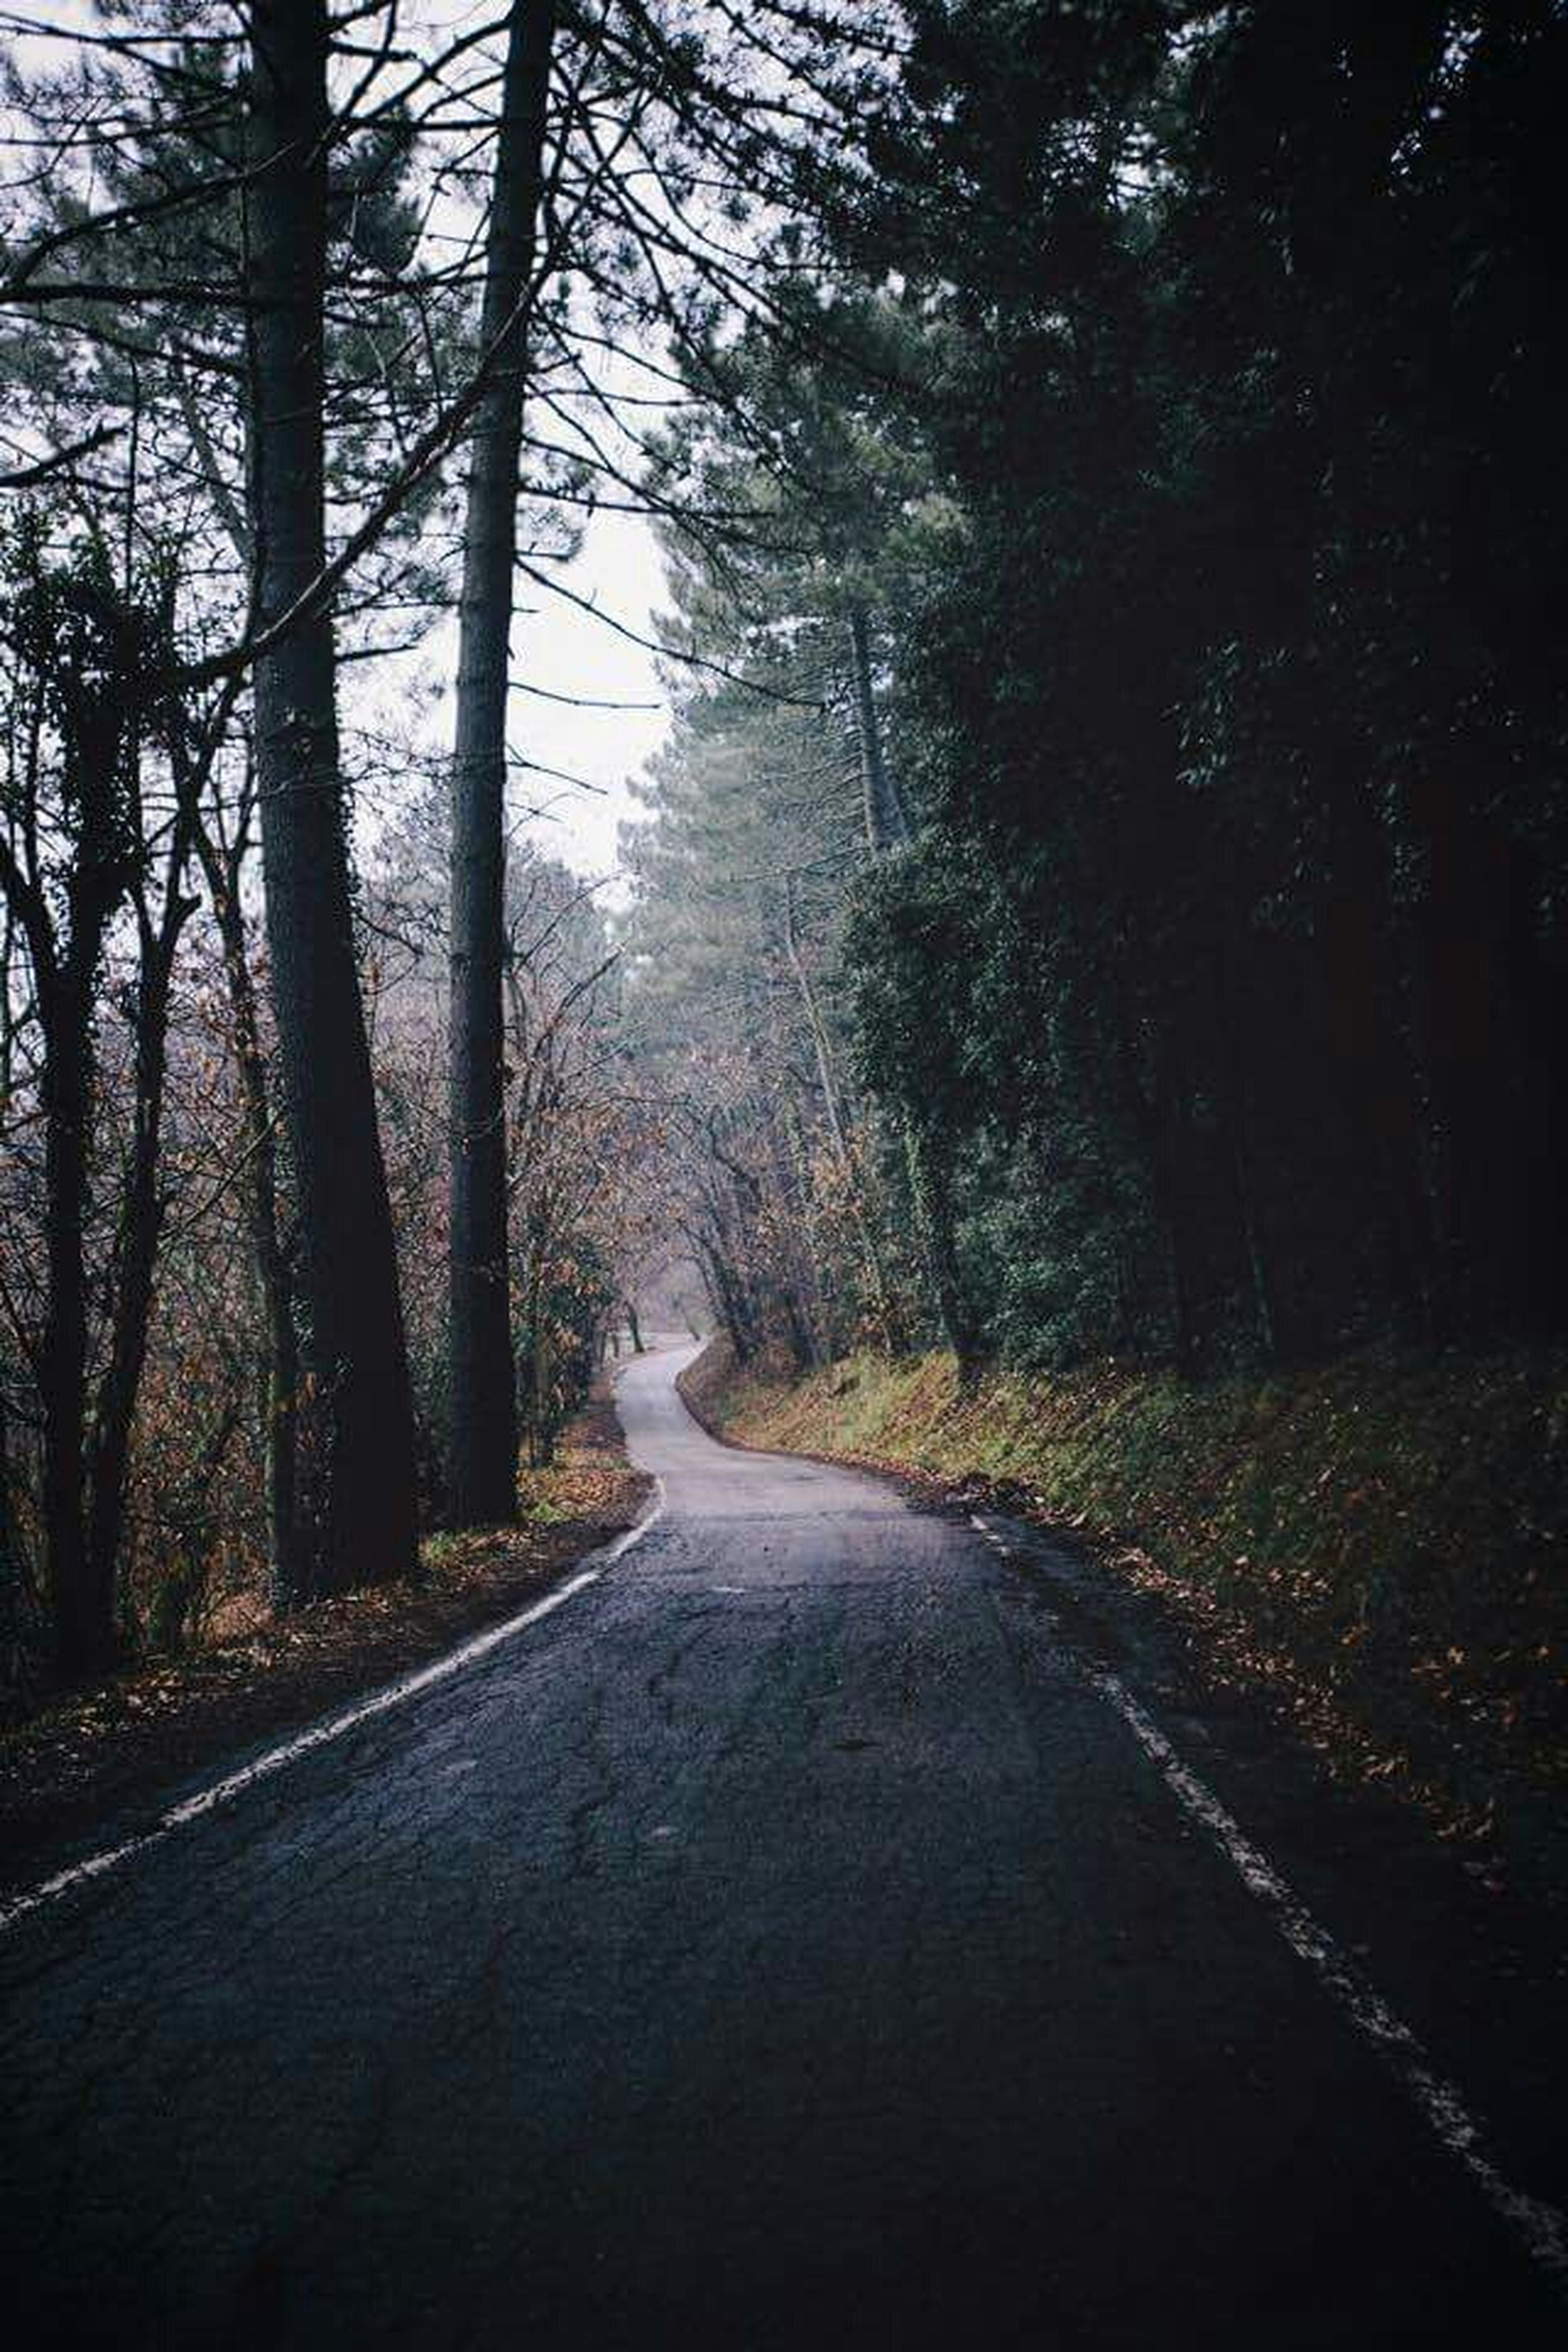 the way forward, tree, road, diminishing perspective, transportation, vanishing point, tranquility, forest, tranquil scene, country road, nature, empty road, beauty in nature, scenics, non-urban scene, empty, growth, no people, outdoors, street